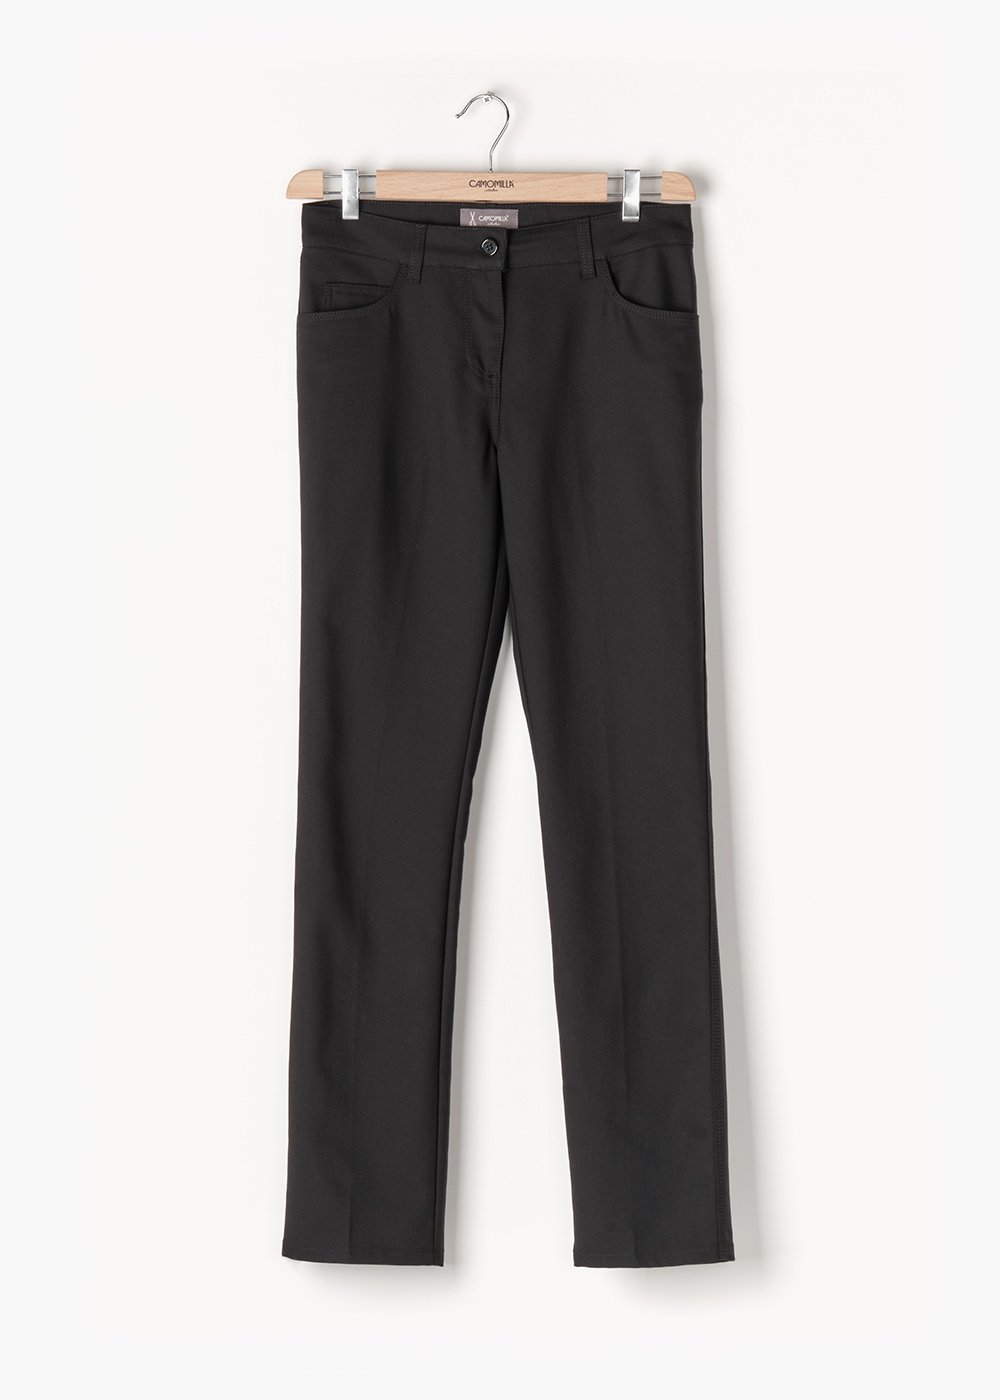 Trousers in 5-pocket Carrie in technical fabric - Black - Woman